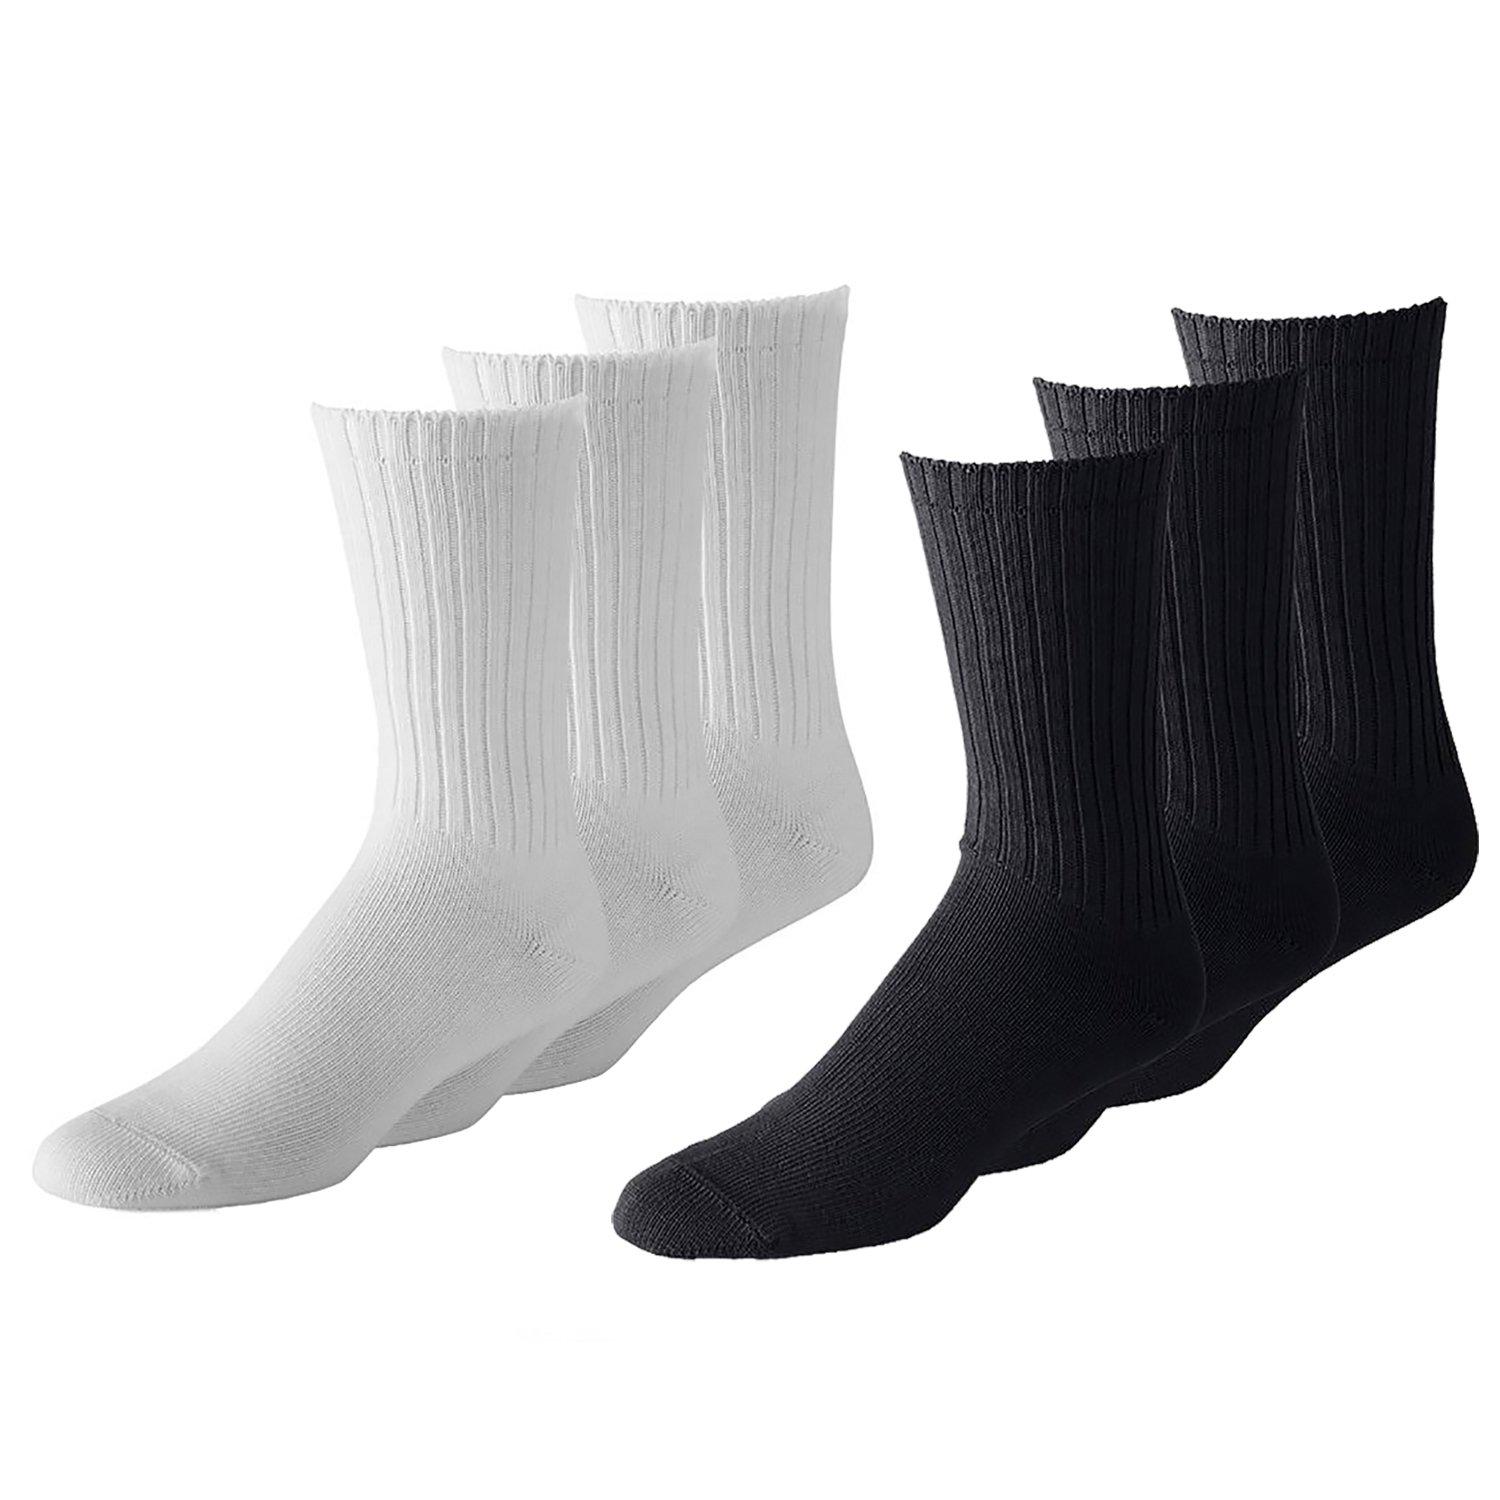 Pricemenow 50 Pairs Men or Women Classic and Athletic Crew Socks - Bulk Wholesale Packs - Any Shoe Size (10-13, Black and White) by Pricemenow